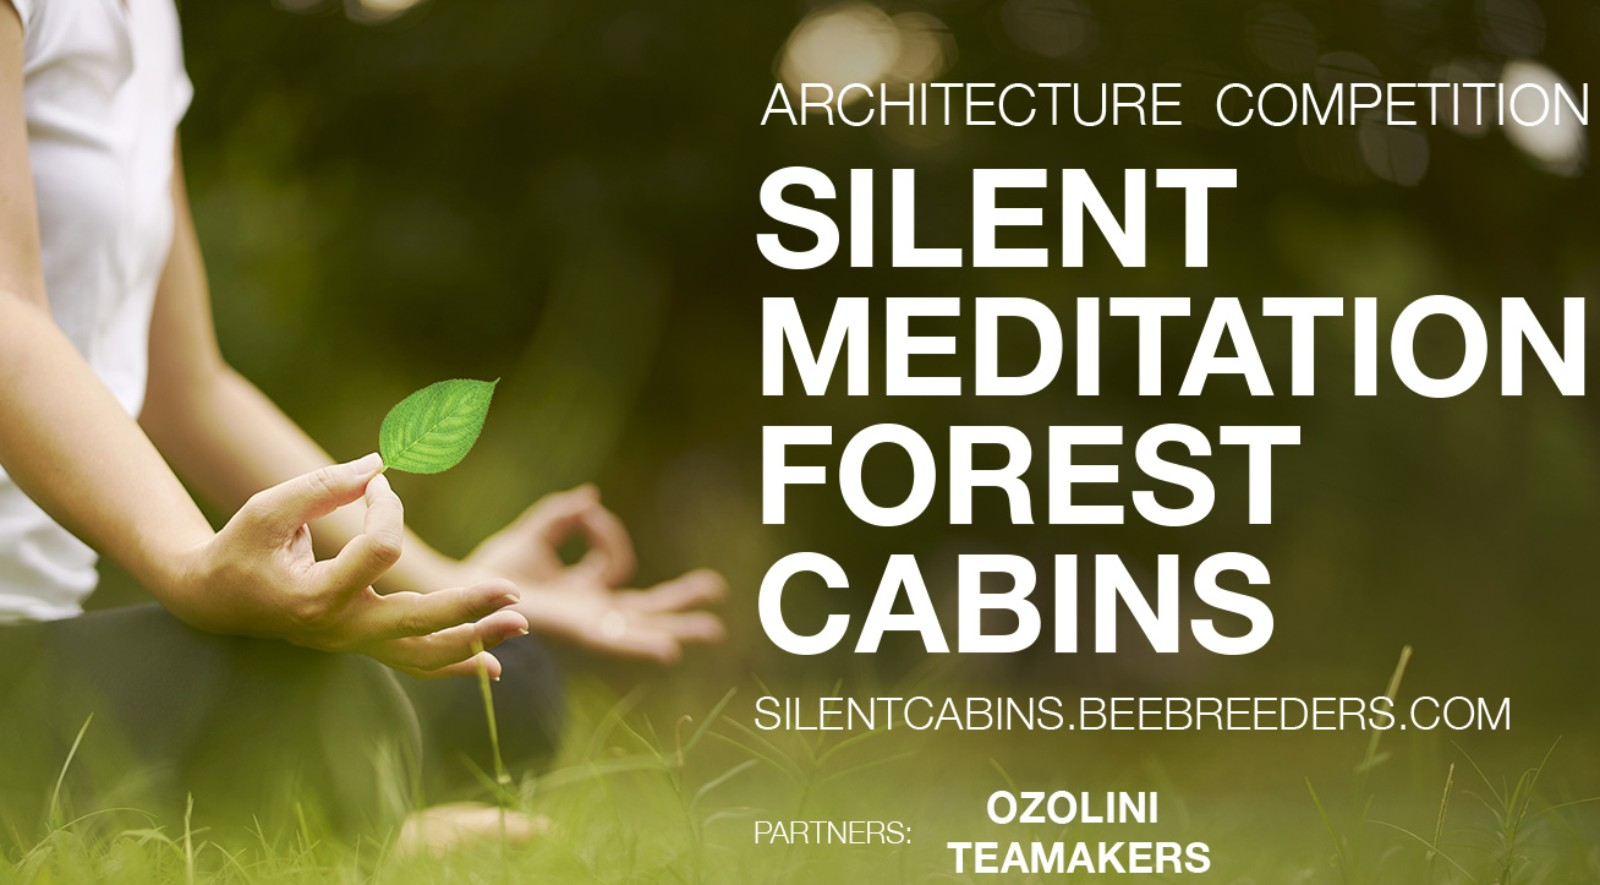 Silent Meditation Forest Cabins